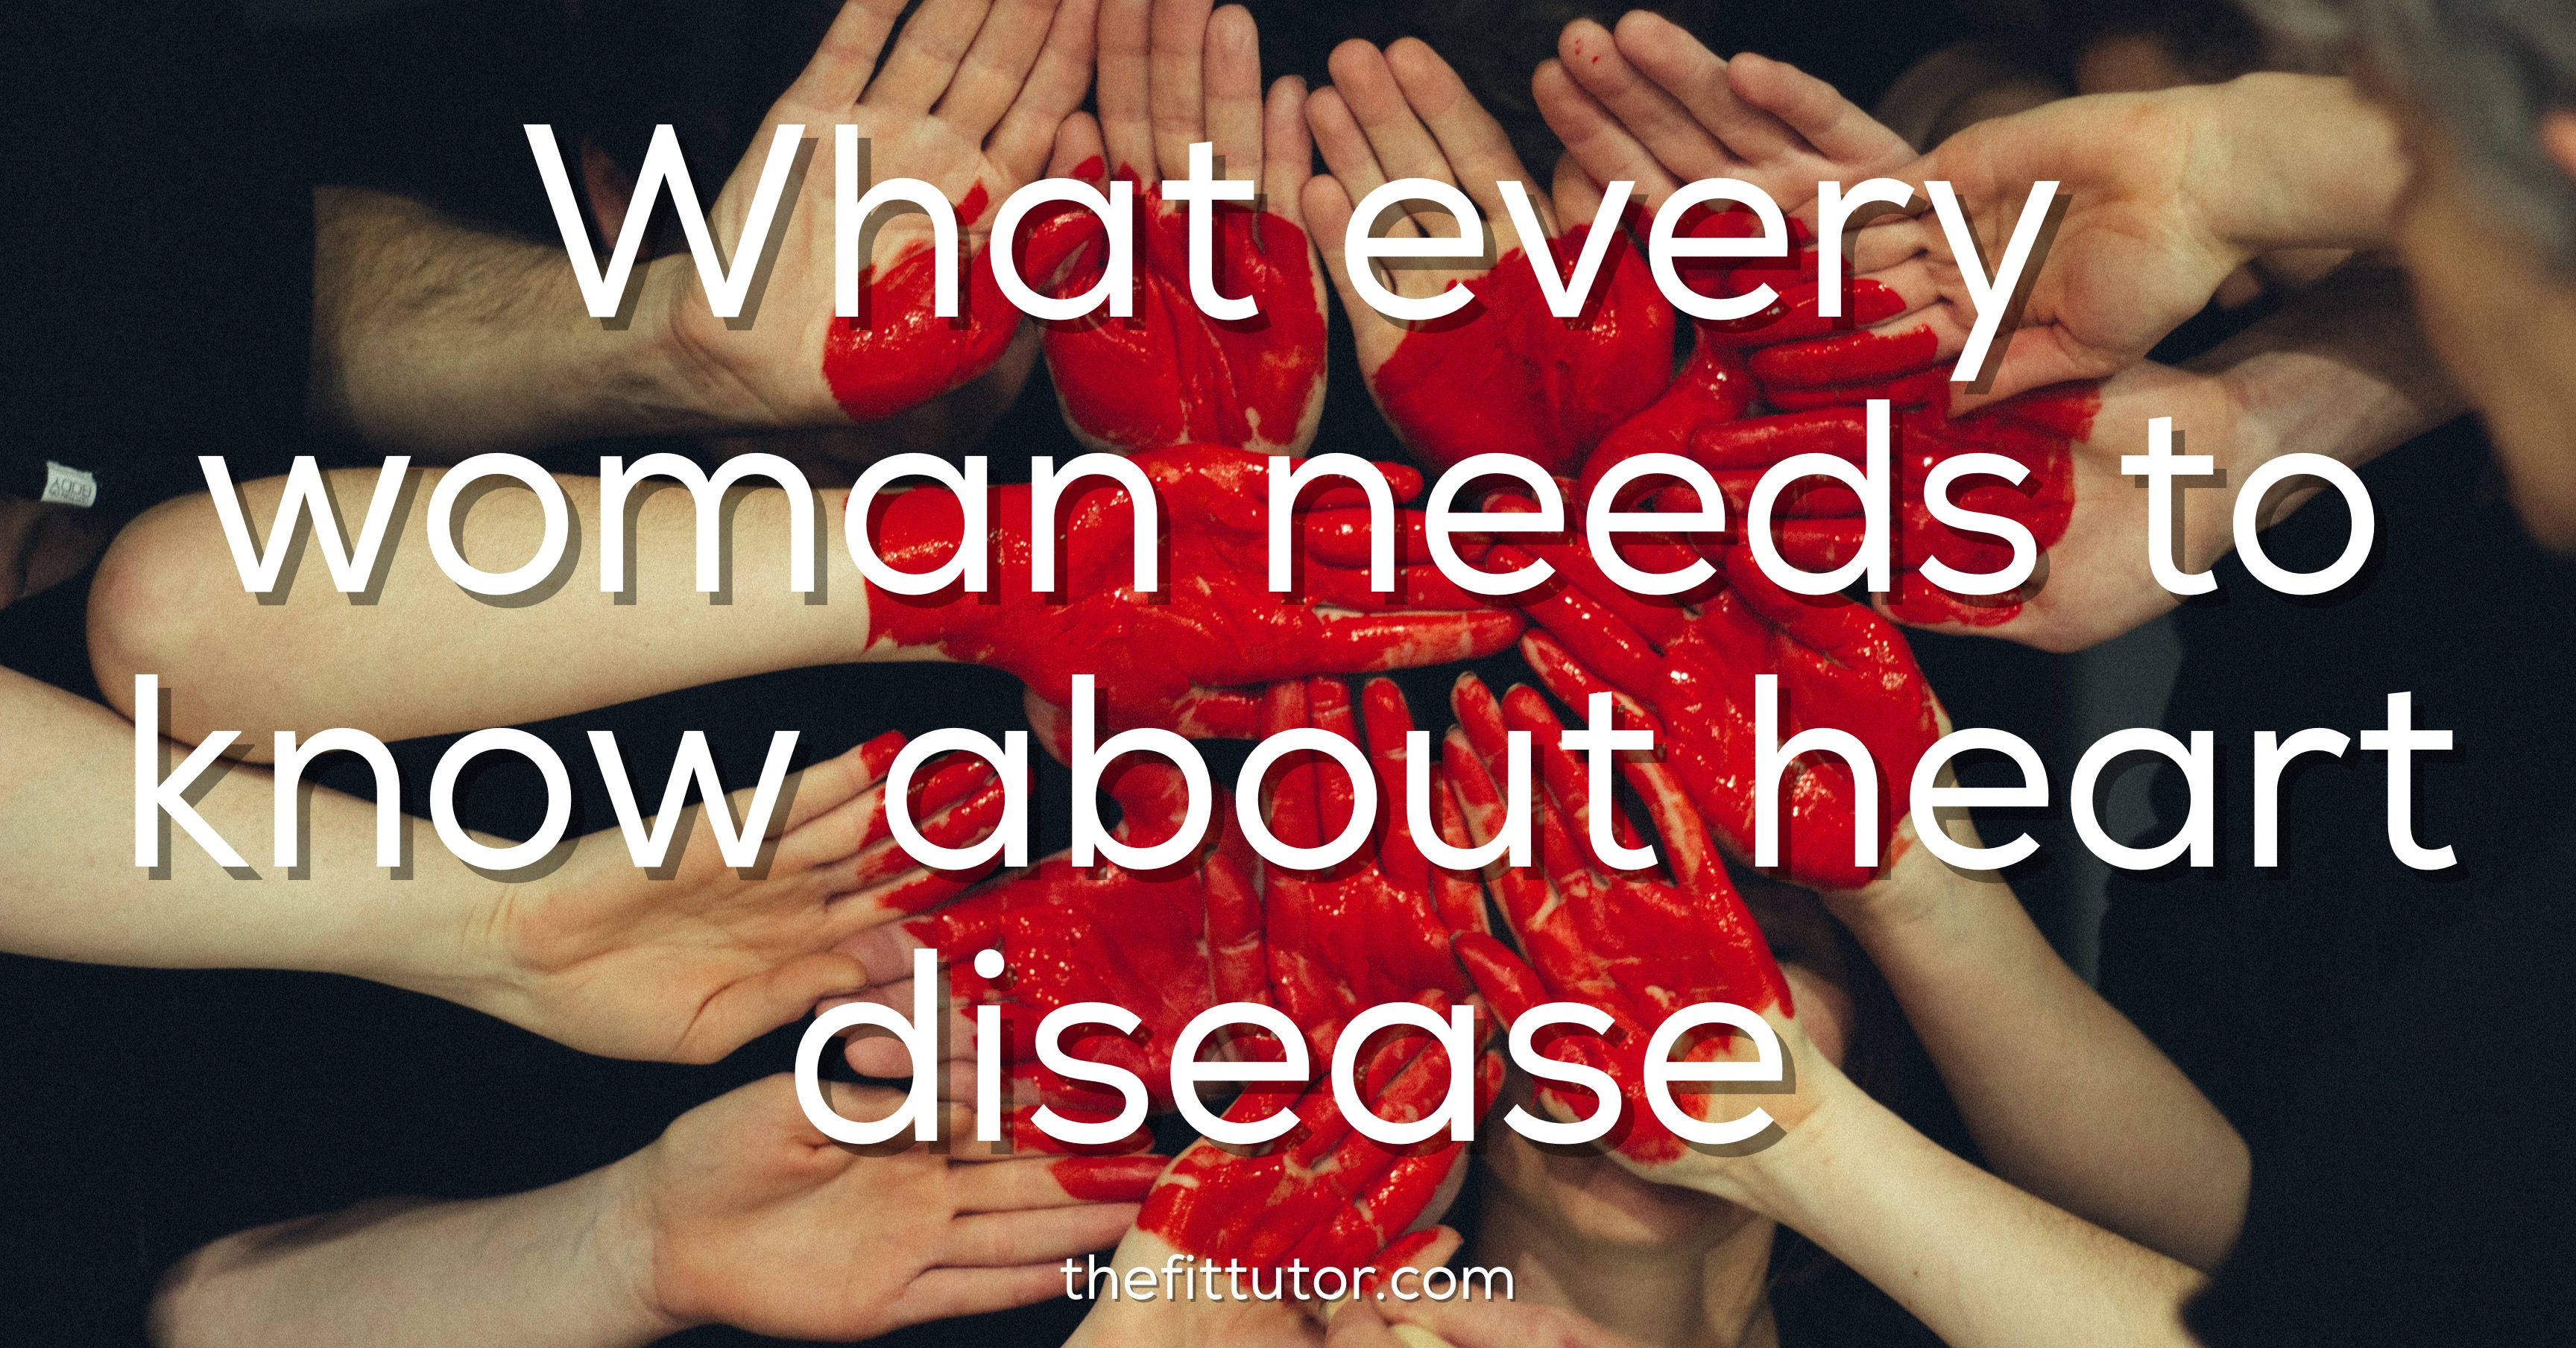 what every woman needs to know about heart disease- the #1 killer of women!